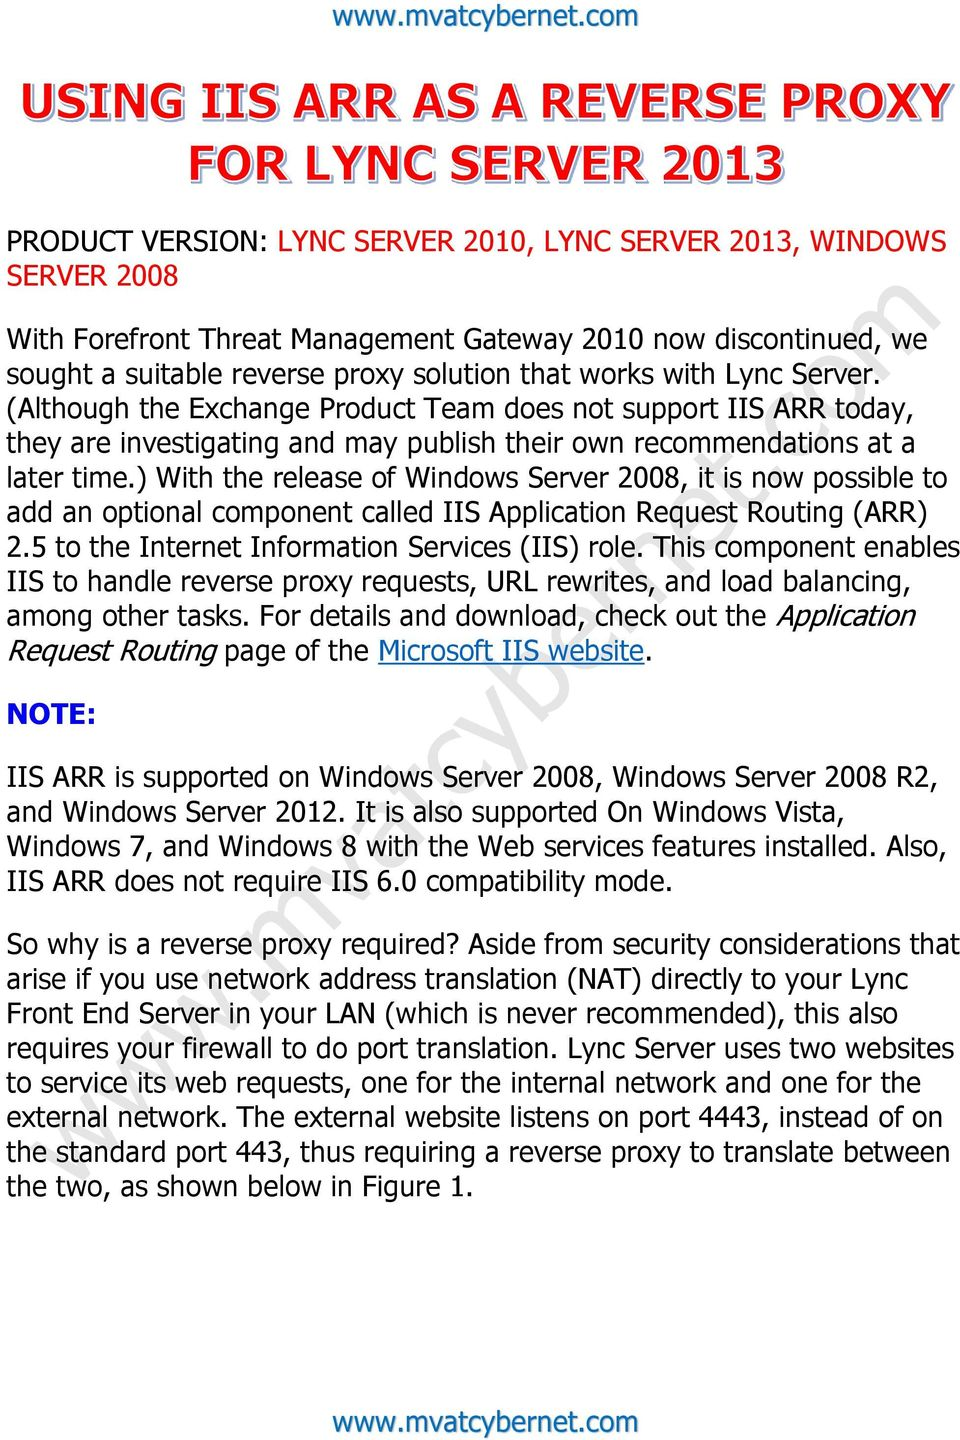 PRODUCT VERSION: LYNC SERVER 2010, LYNC SERVER 2013, WINDOWS